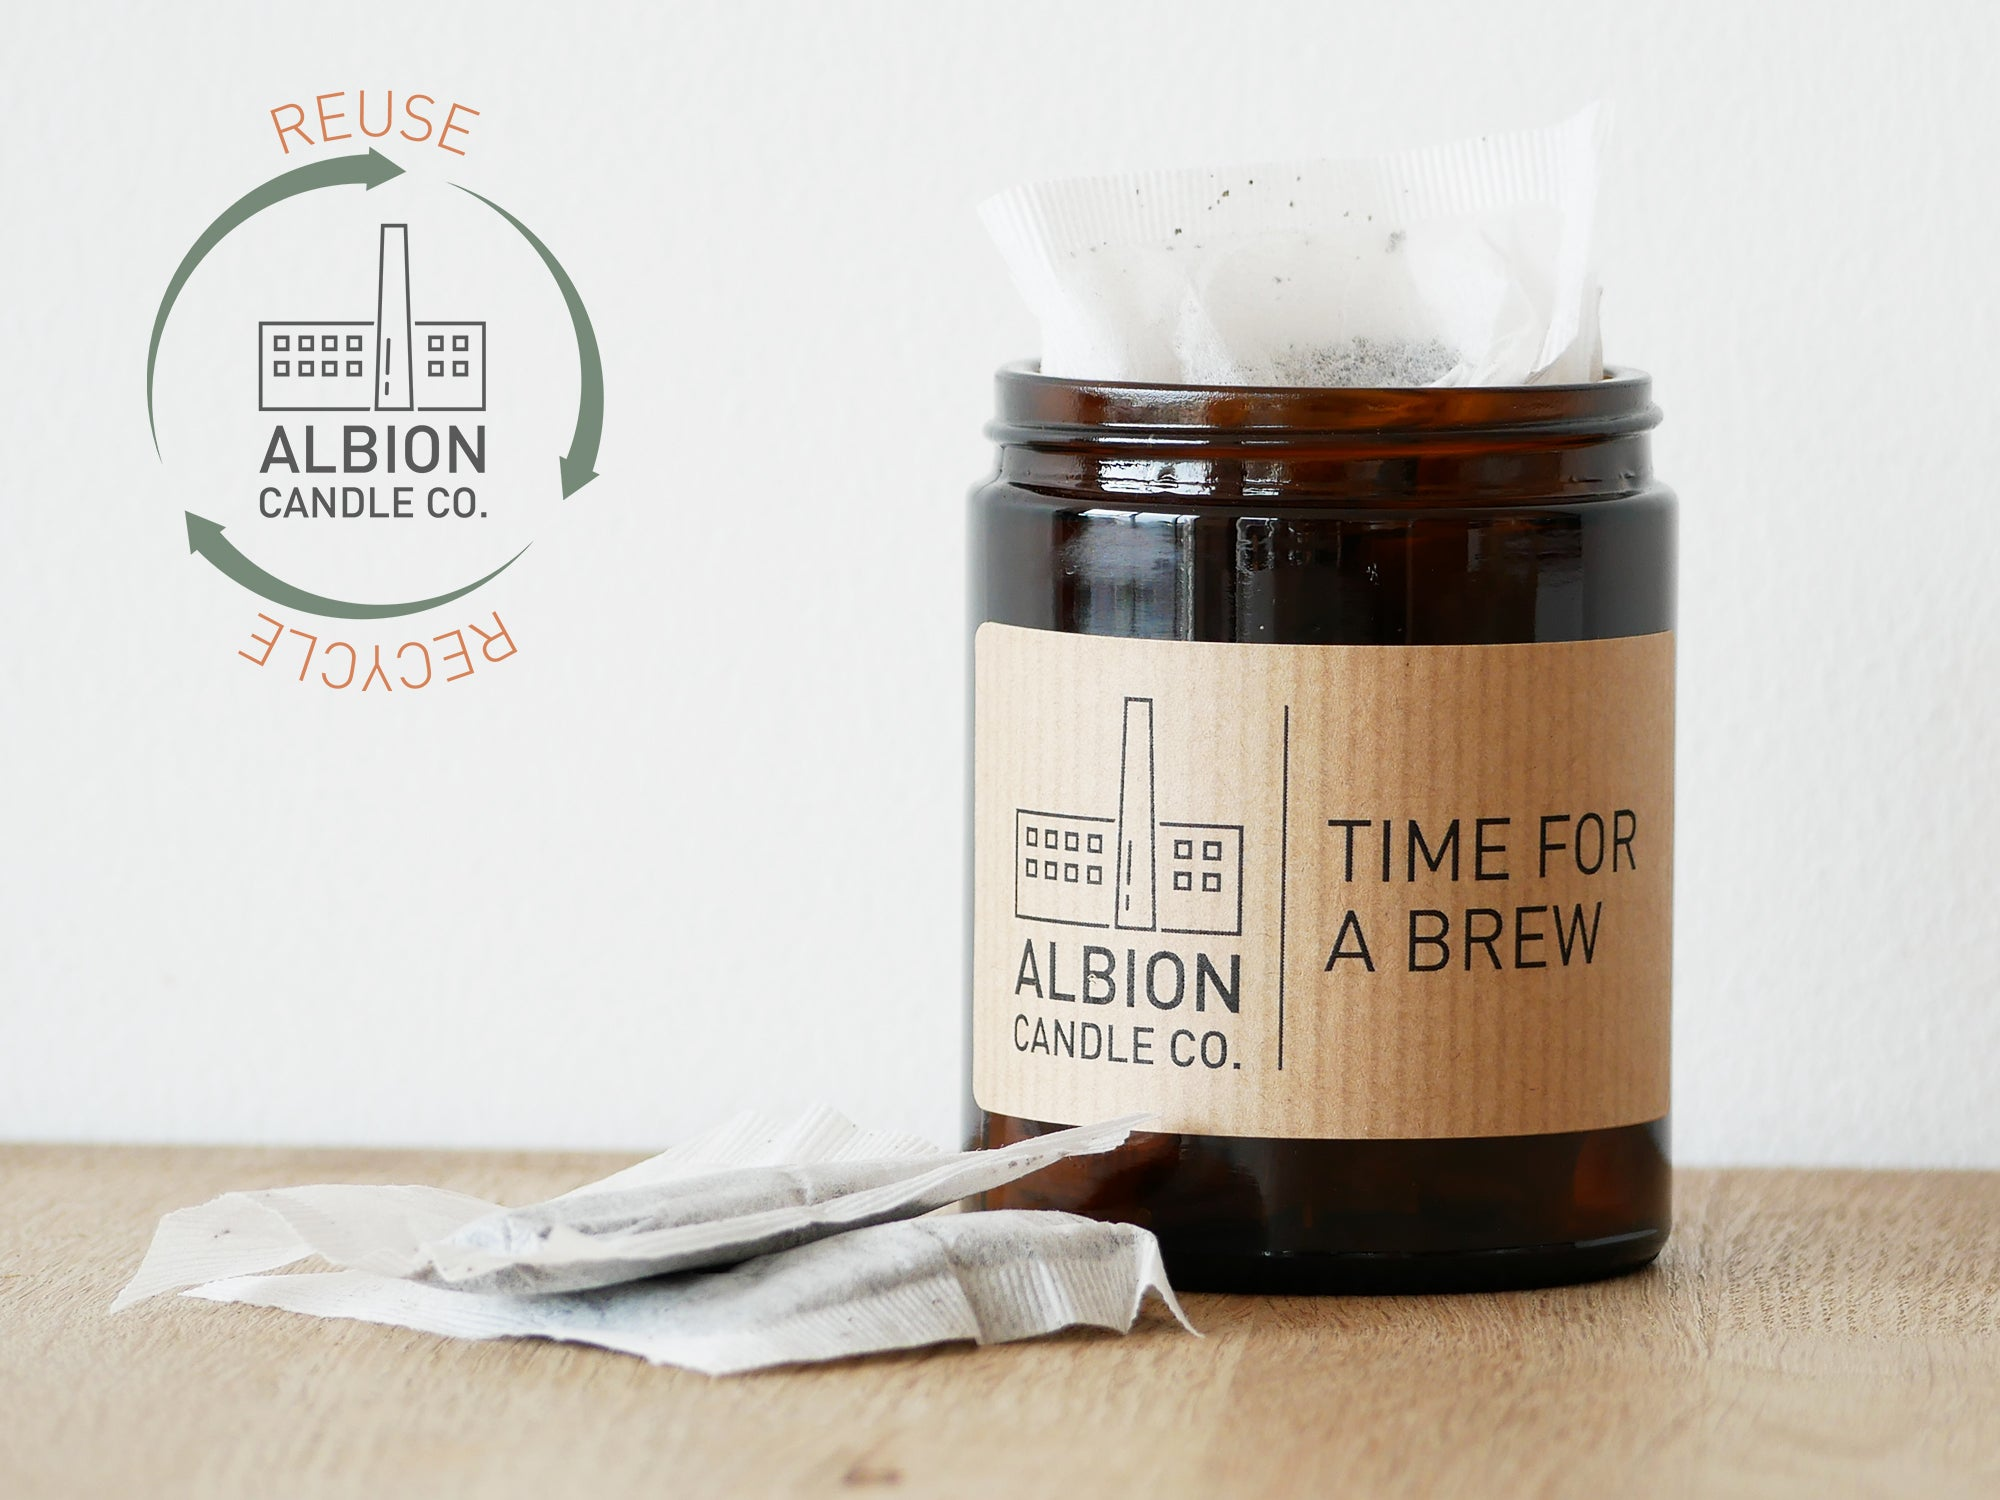 'TIME FOR A BREW' LABEL